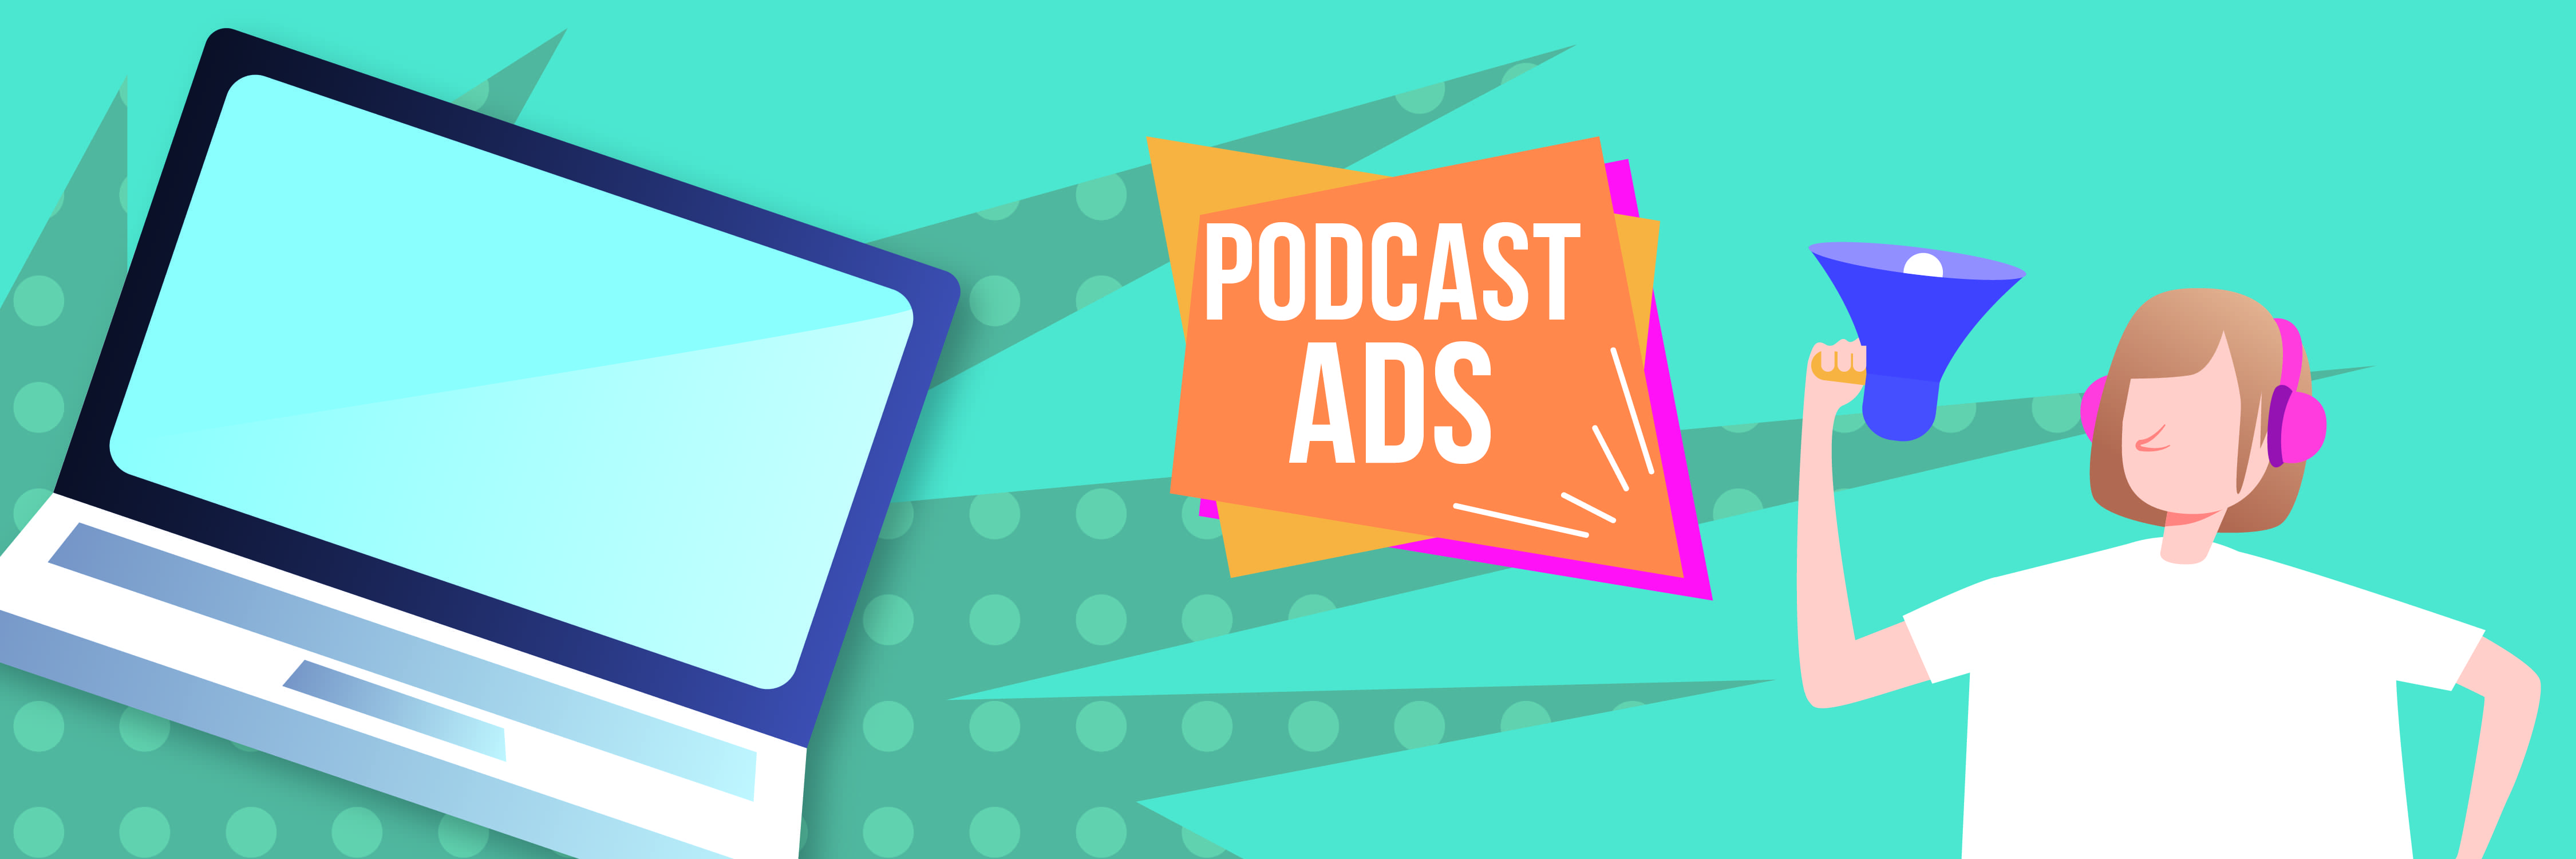 podcast-ads-laptop-person-advertising-speaking-to-promote